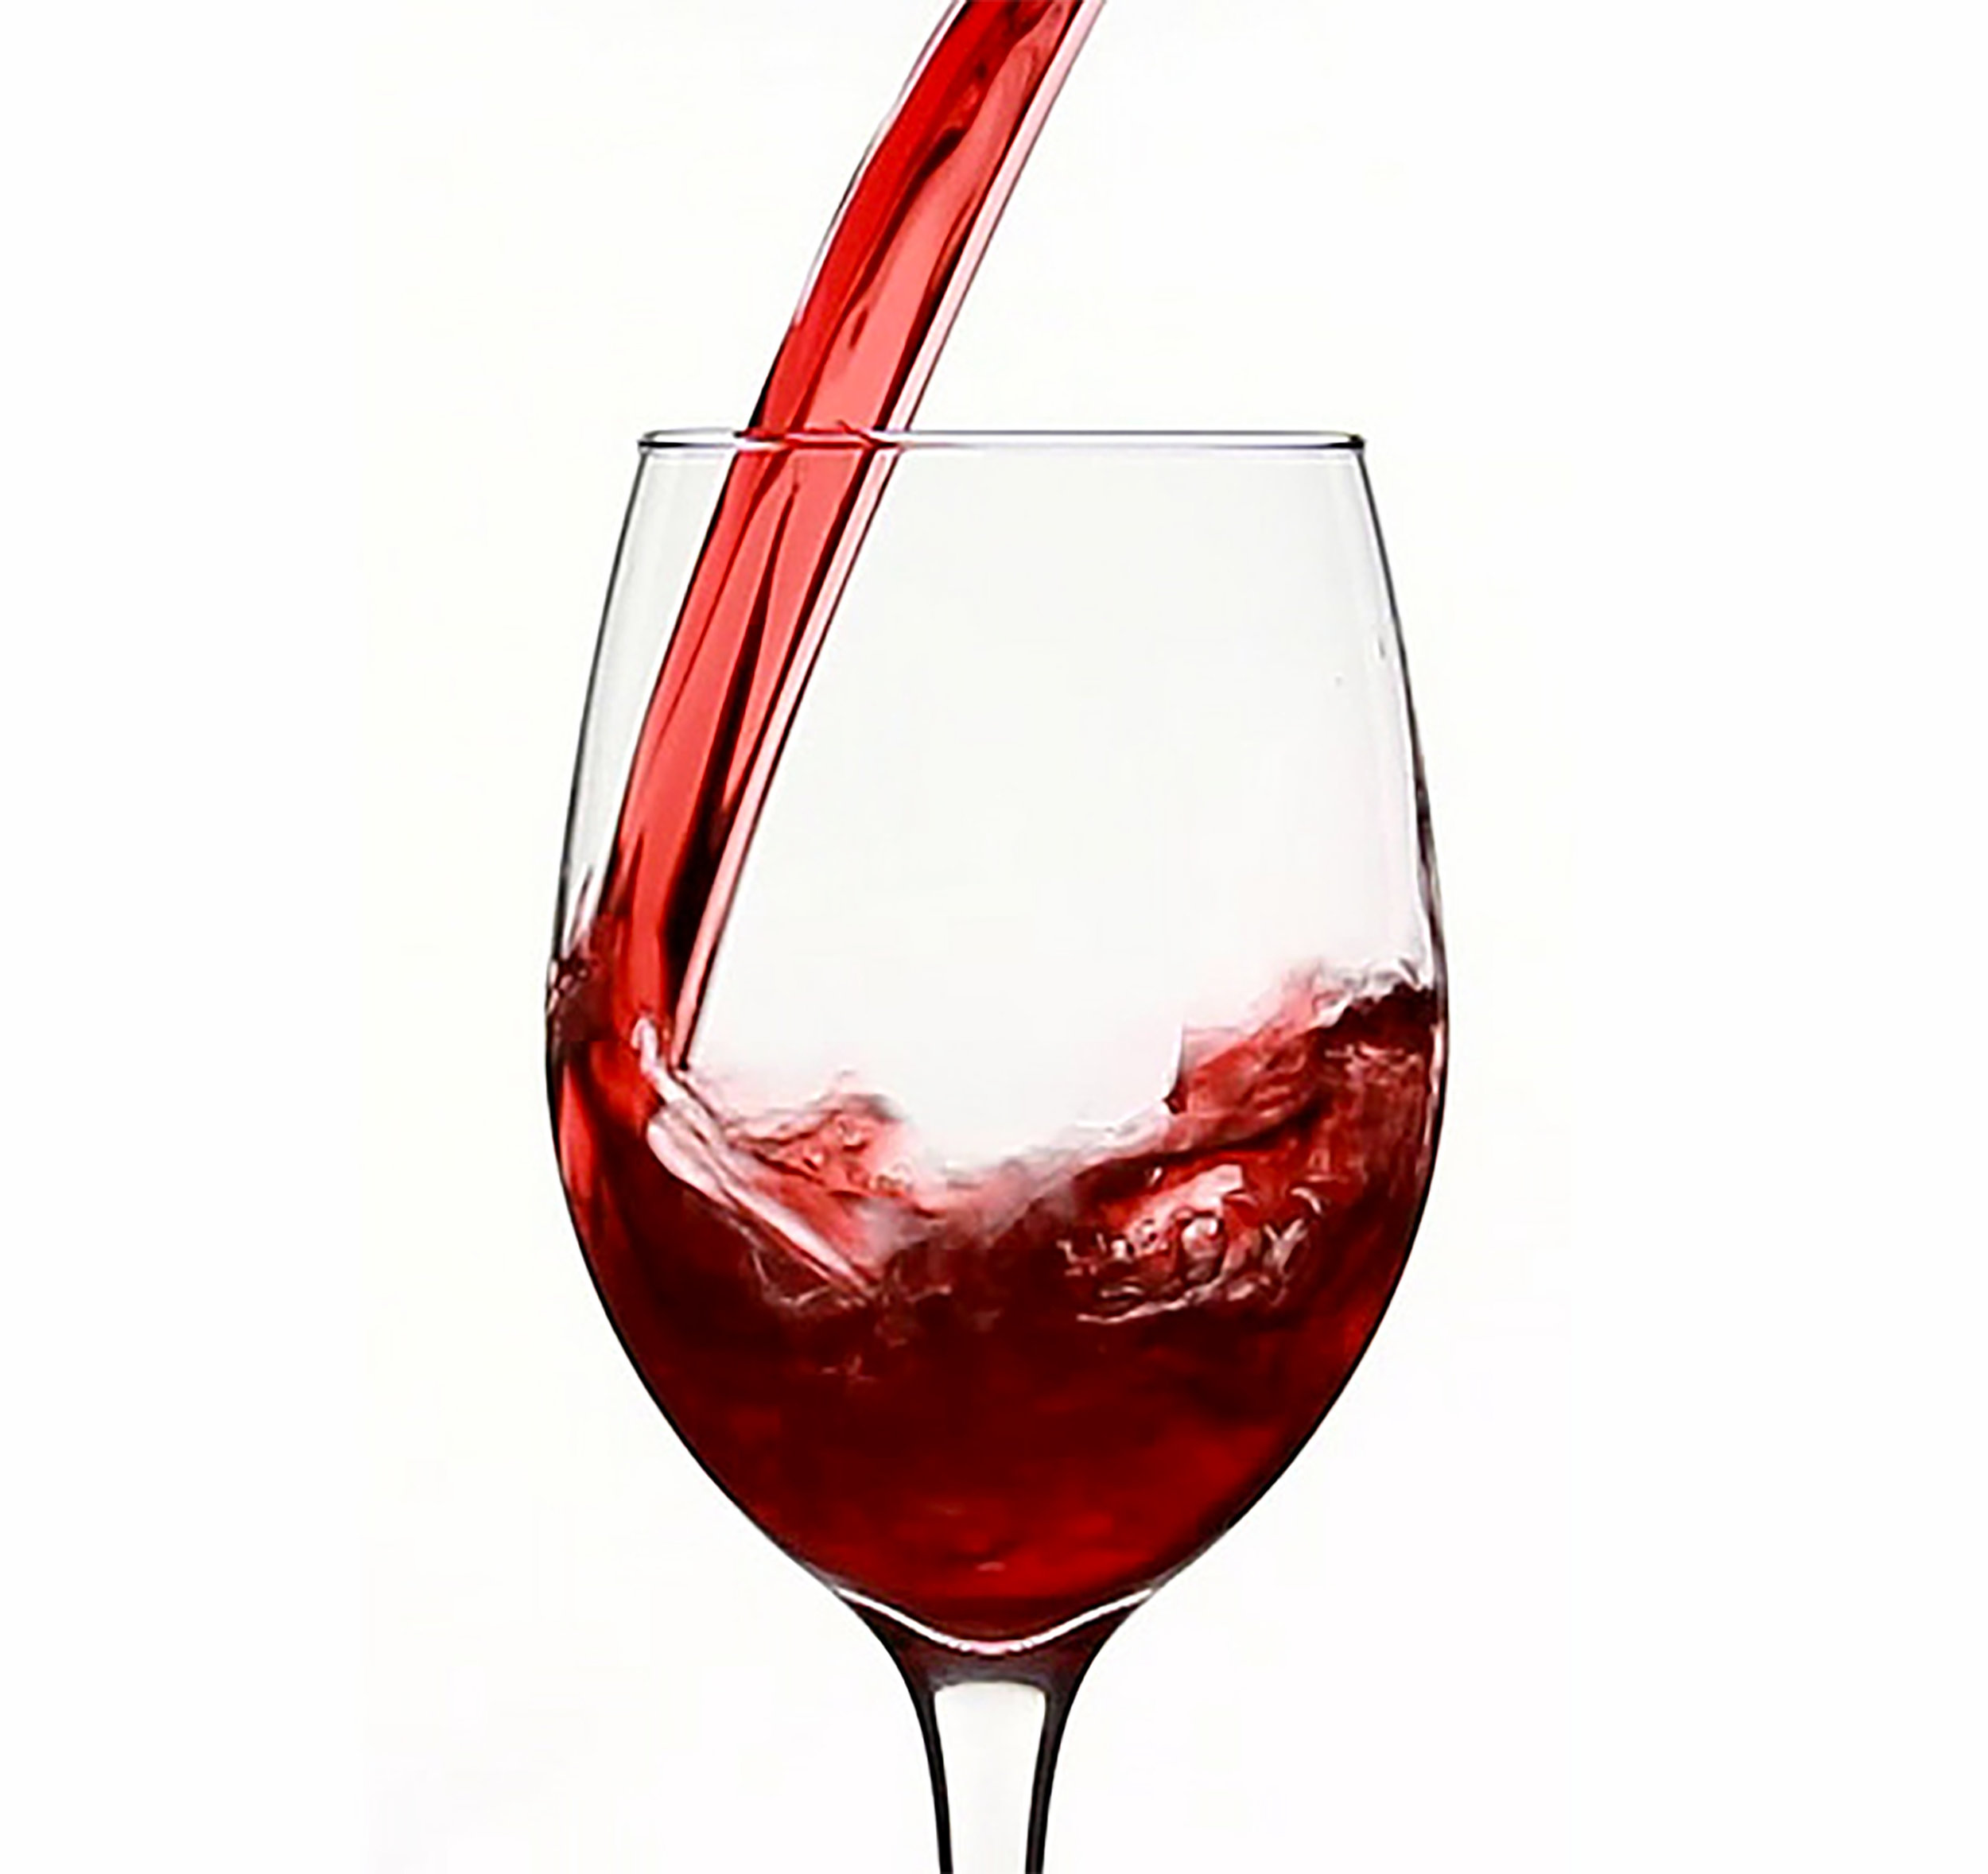 March 4th Tasting Menu:The 2015 Lapis Luna Chardonnay, 2015 Rosé of Sangiovese, 2014 Dolcetto, 2014 Merlot, 2012 Super Rosso, and 2014 Syrah